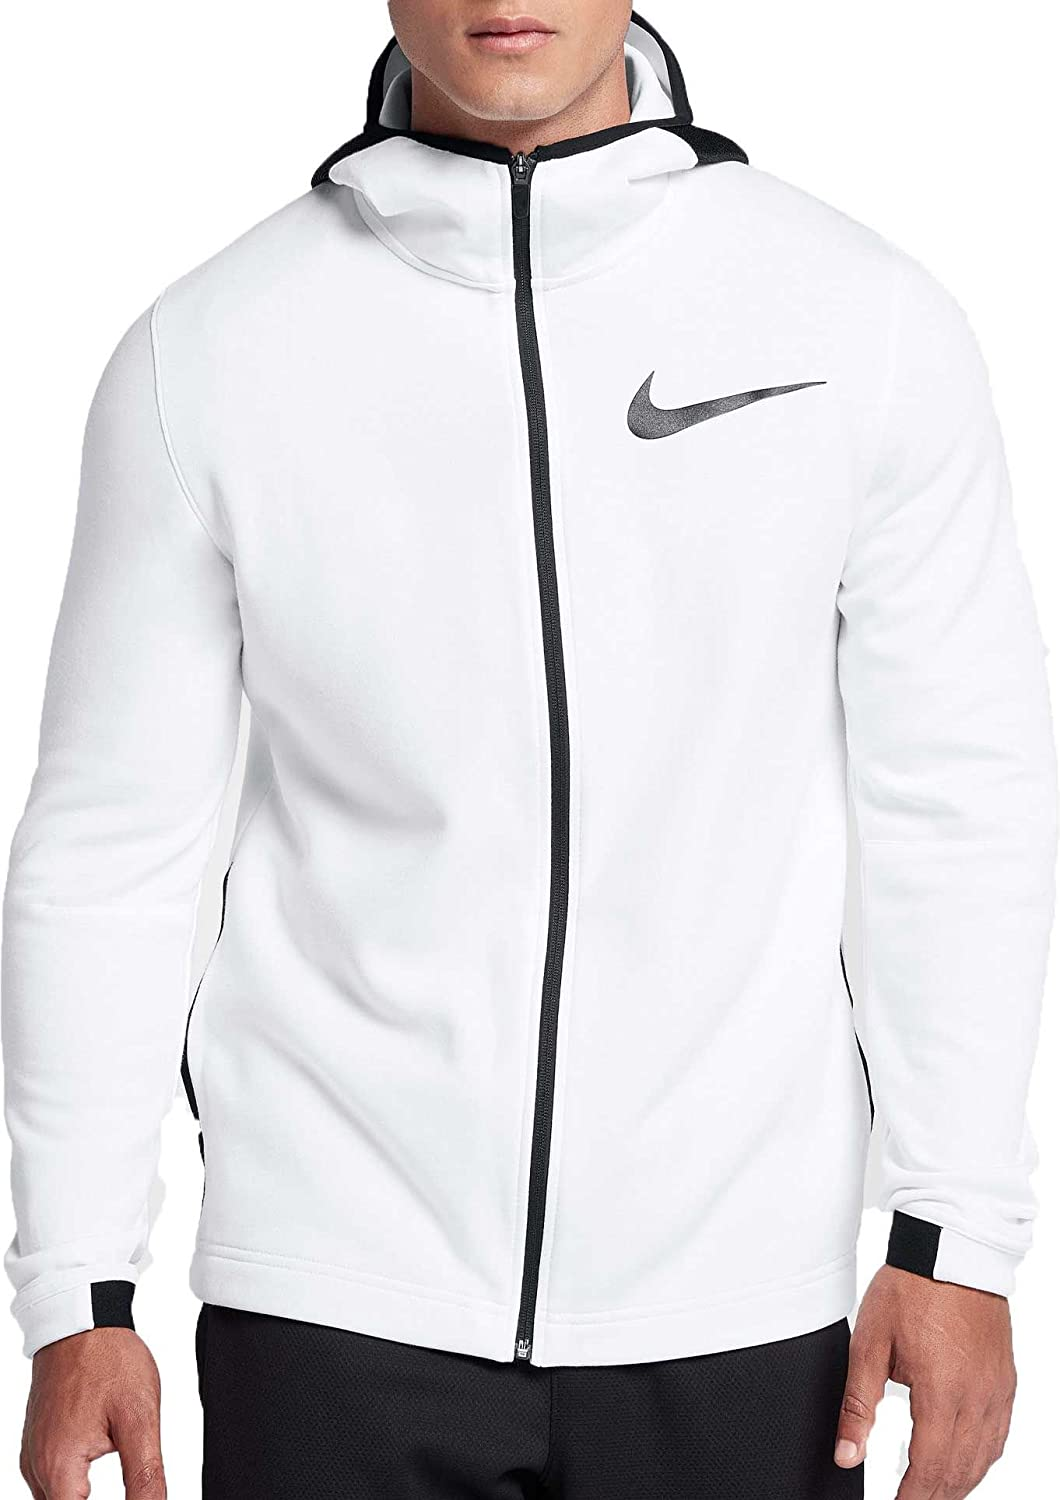 58b668eb391 Amazon.com  Nike Men s Dry Showtime Full Zip Basketball Hoodie (White White